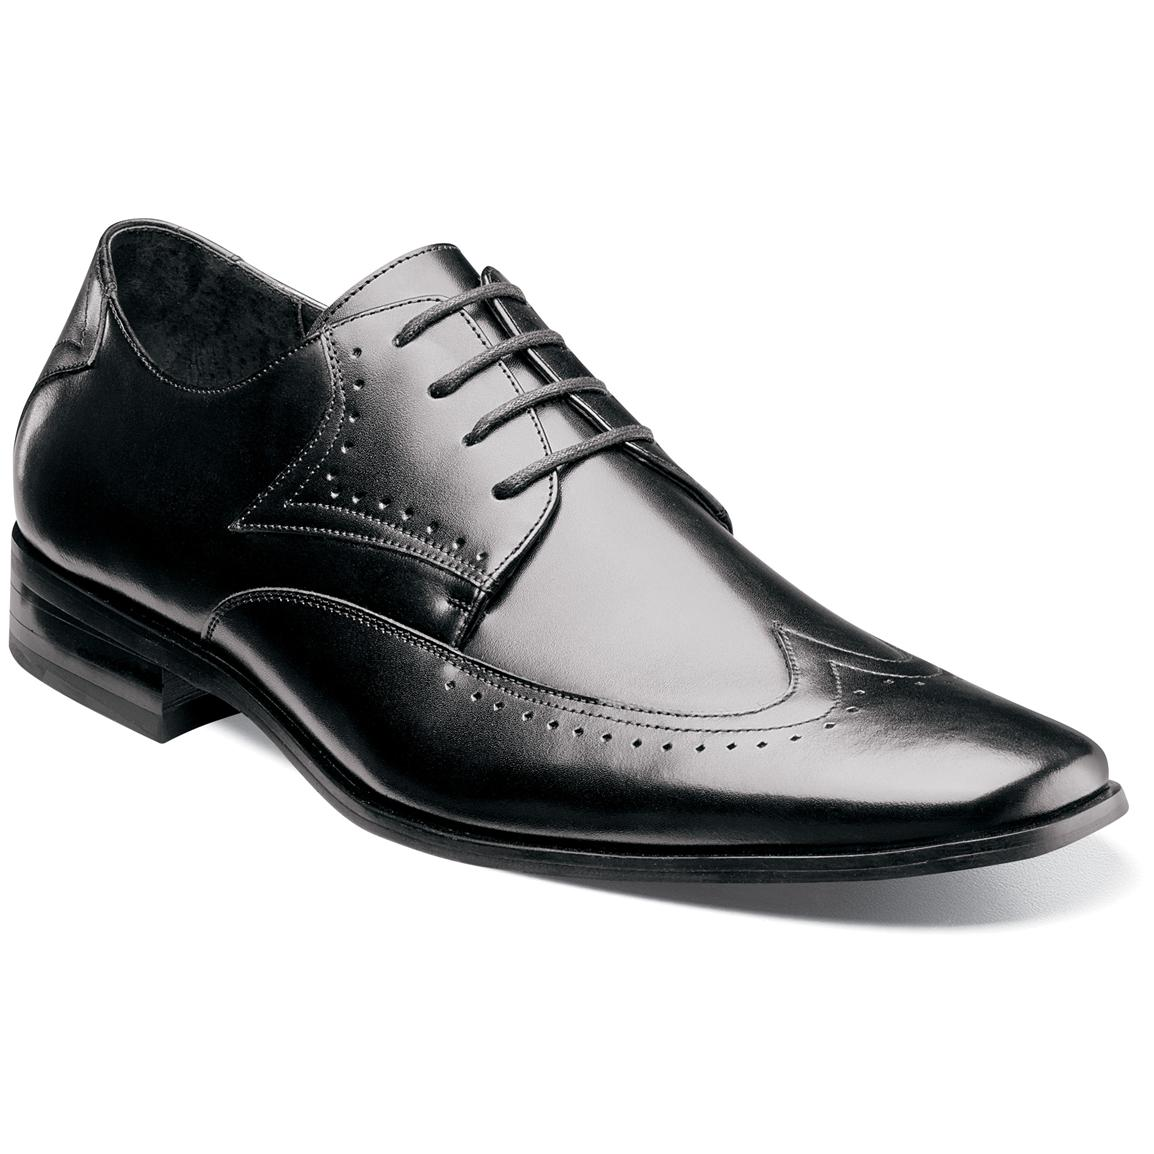 Free shipping and returns on Stacy Adams Lavine Wingtip Monk Shoe (Men) at trueffil983.gq Hex-embossed insets bring distinctive texture to an updated wingtip shoe topped with a /5(10).